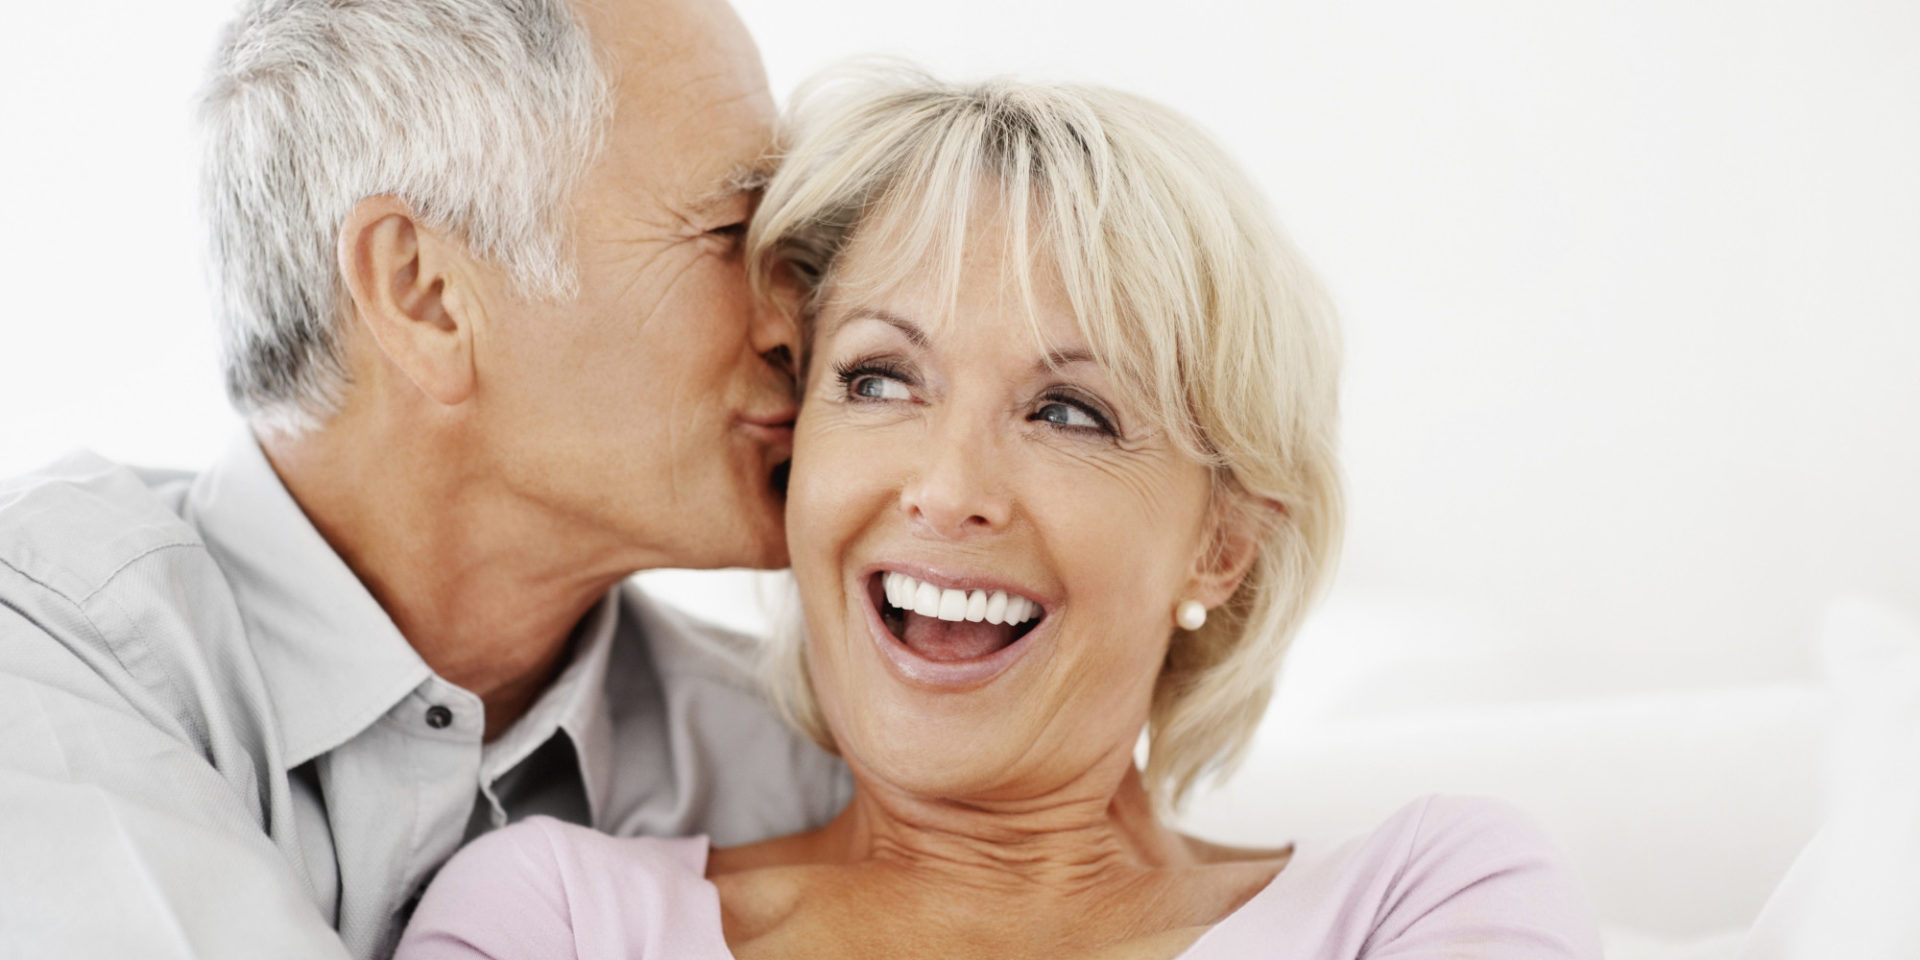 a happy older middle aged couple laughing and smiling with good hormones and hormone replacement therapy